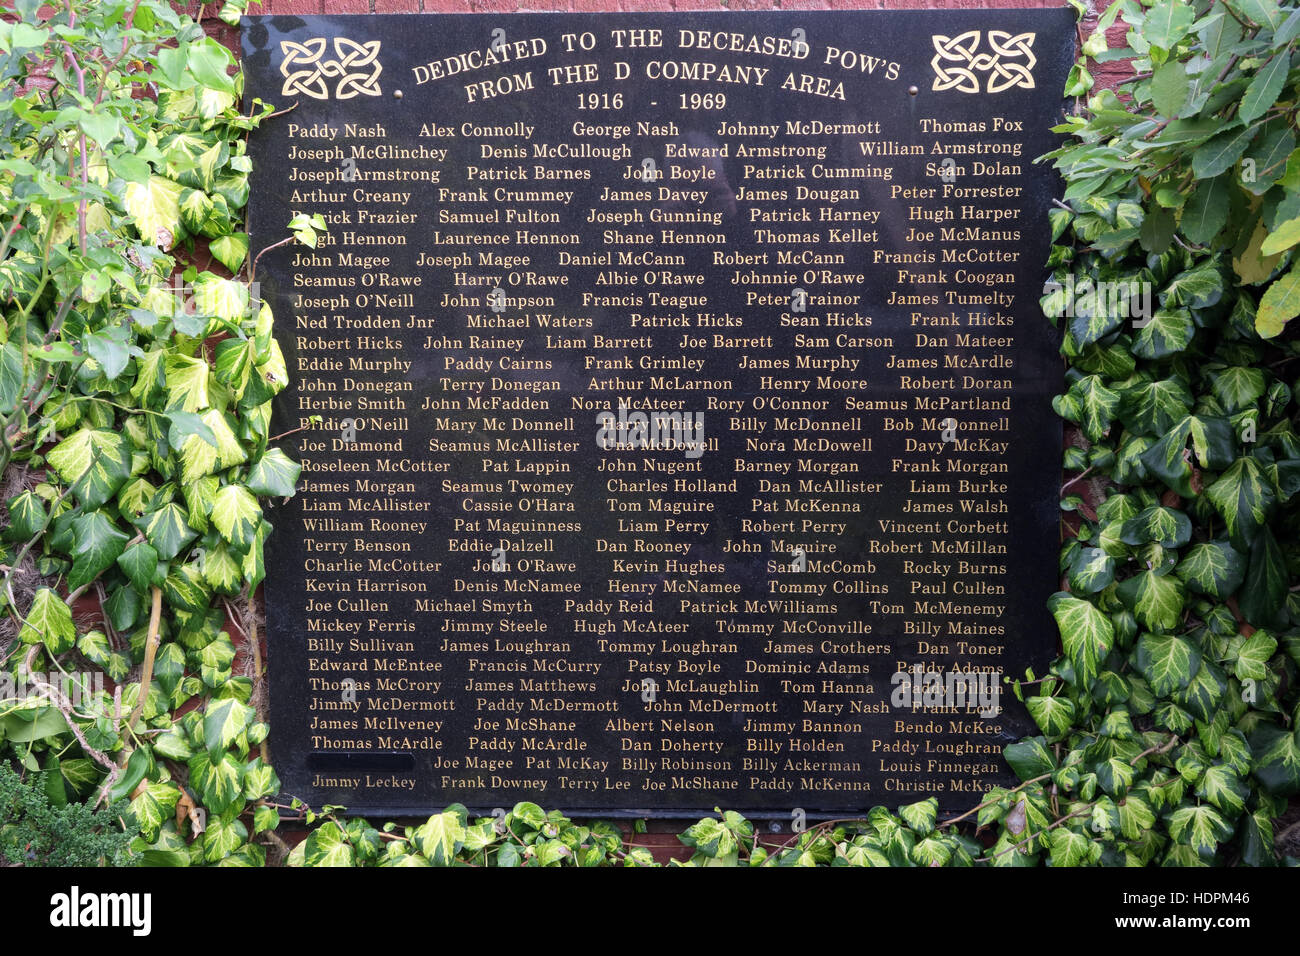 Falls rd,Garden of remembrance, Deceased POWs killed,also deceased ex-prisoners,West Belfast,NI, UK - Stock Image